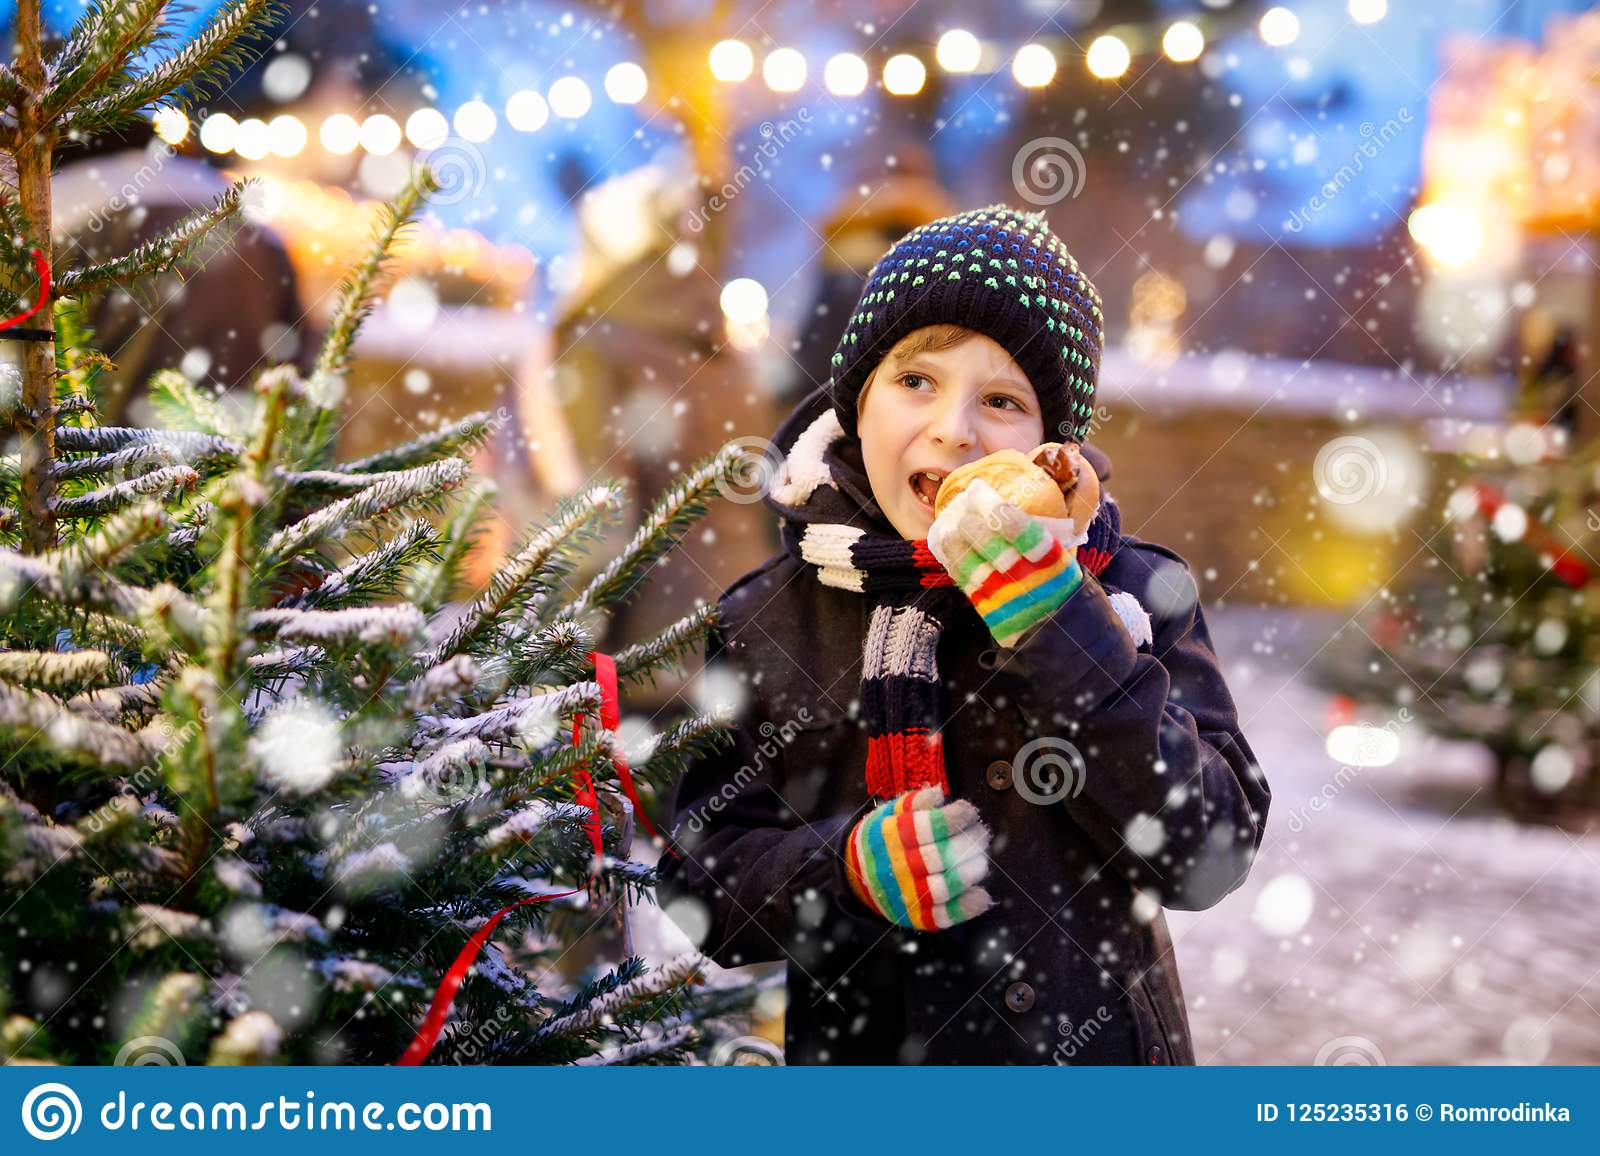 Little cute kid boy eating German sausage and drinking hot children punch on Christmas market. Happy child on